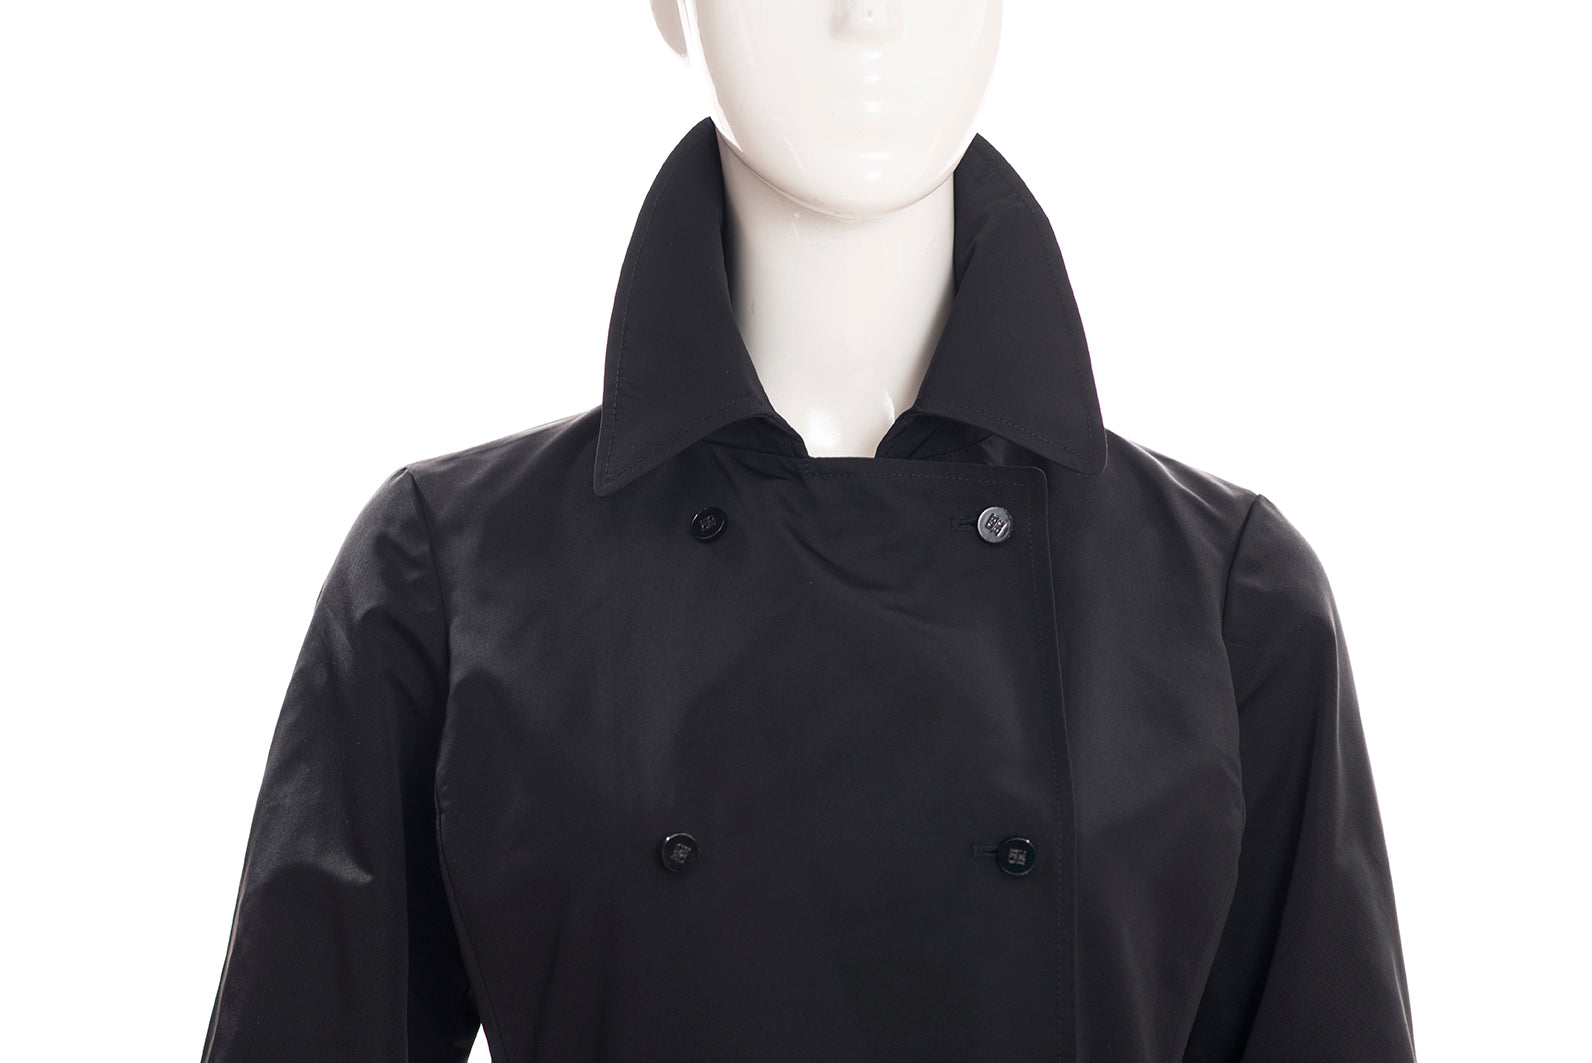 f93832888cb97 CH CAROLINA HERRERA Black Double Breasted Twill Belted Trench Coat Jacket XS